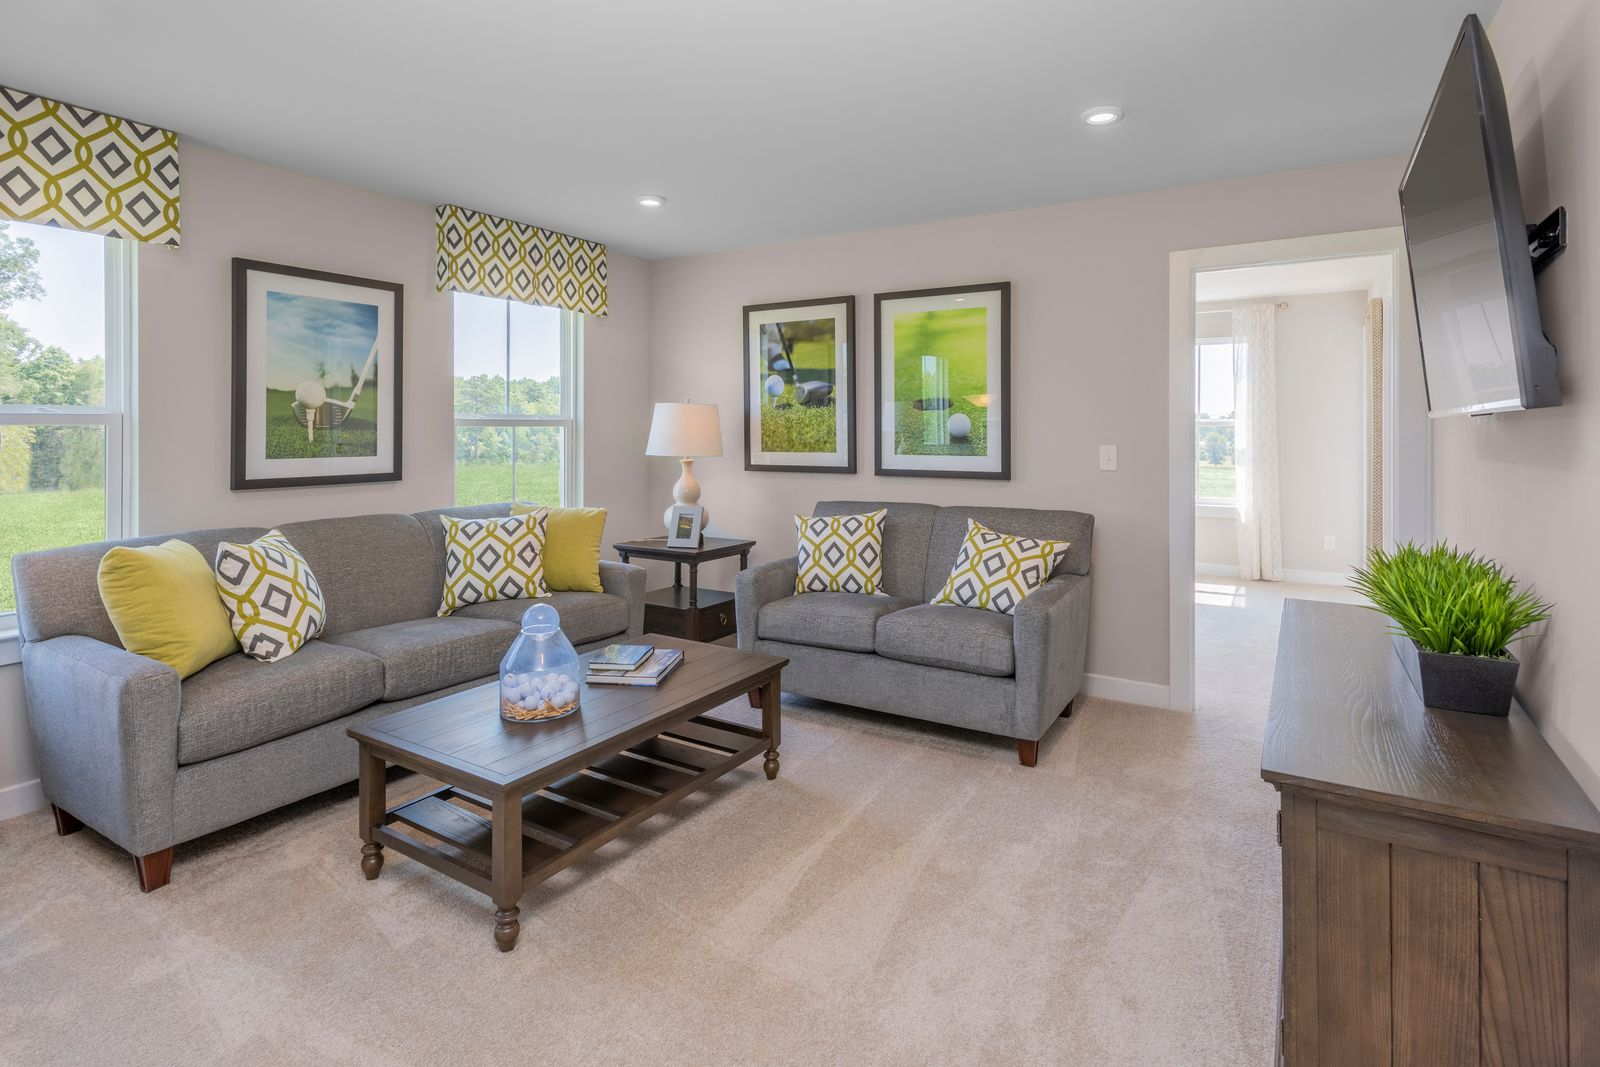 Living Area featured in the Seneca By Ryan Homes in Outer Banks, NC